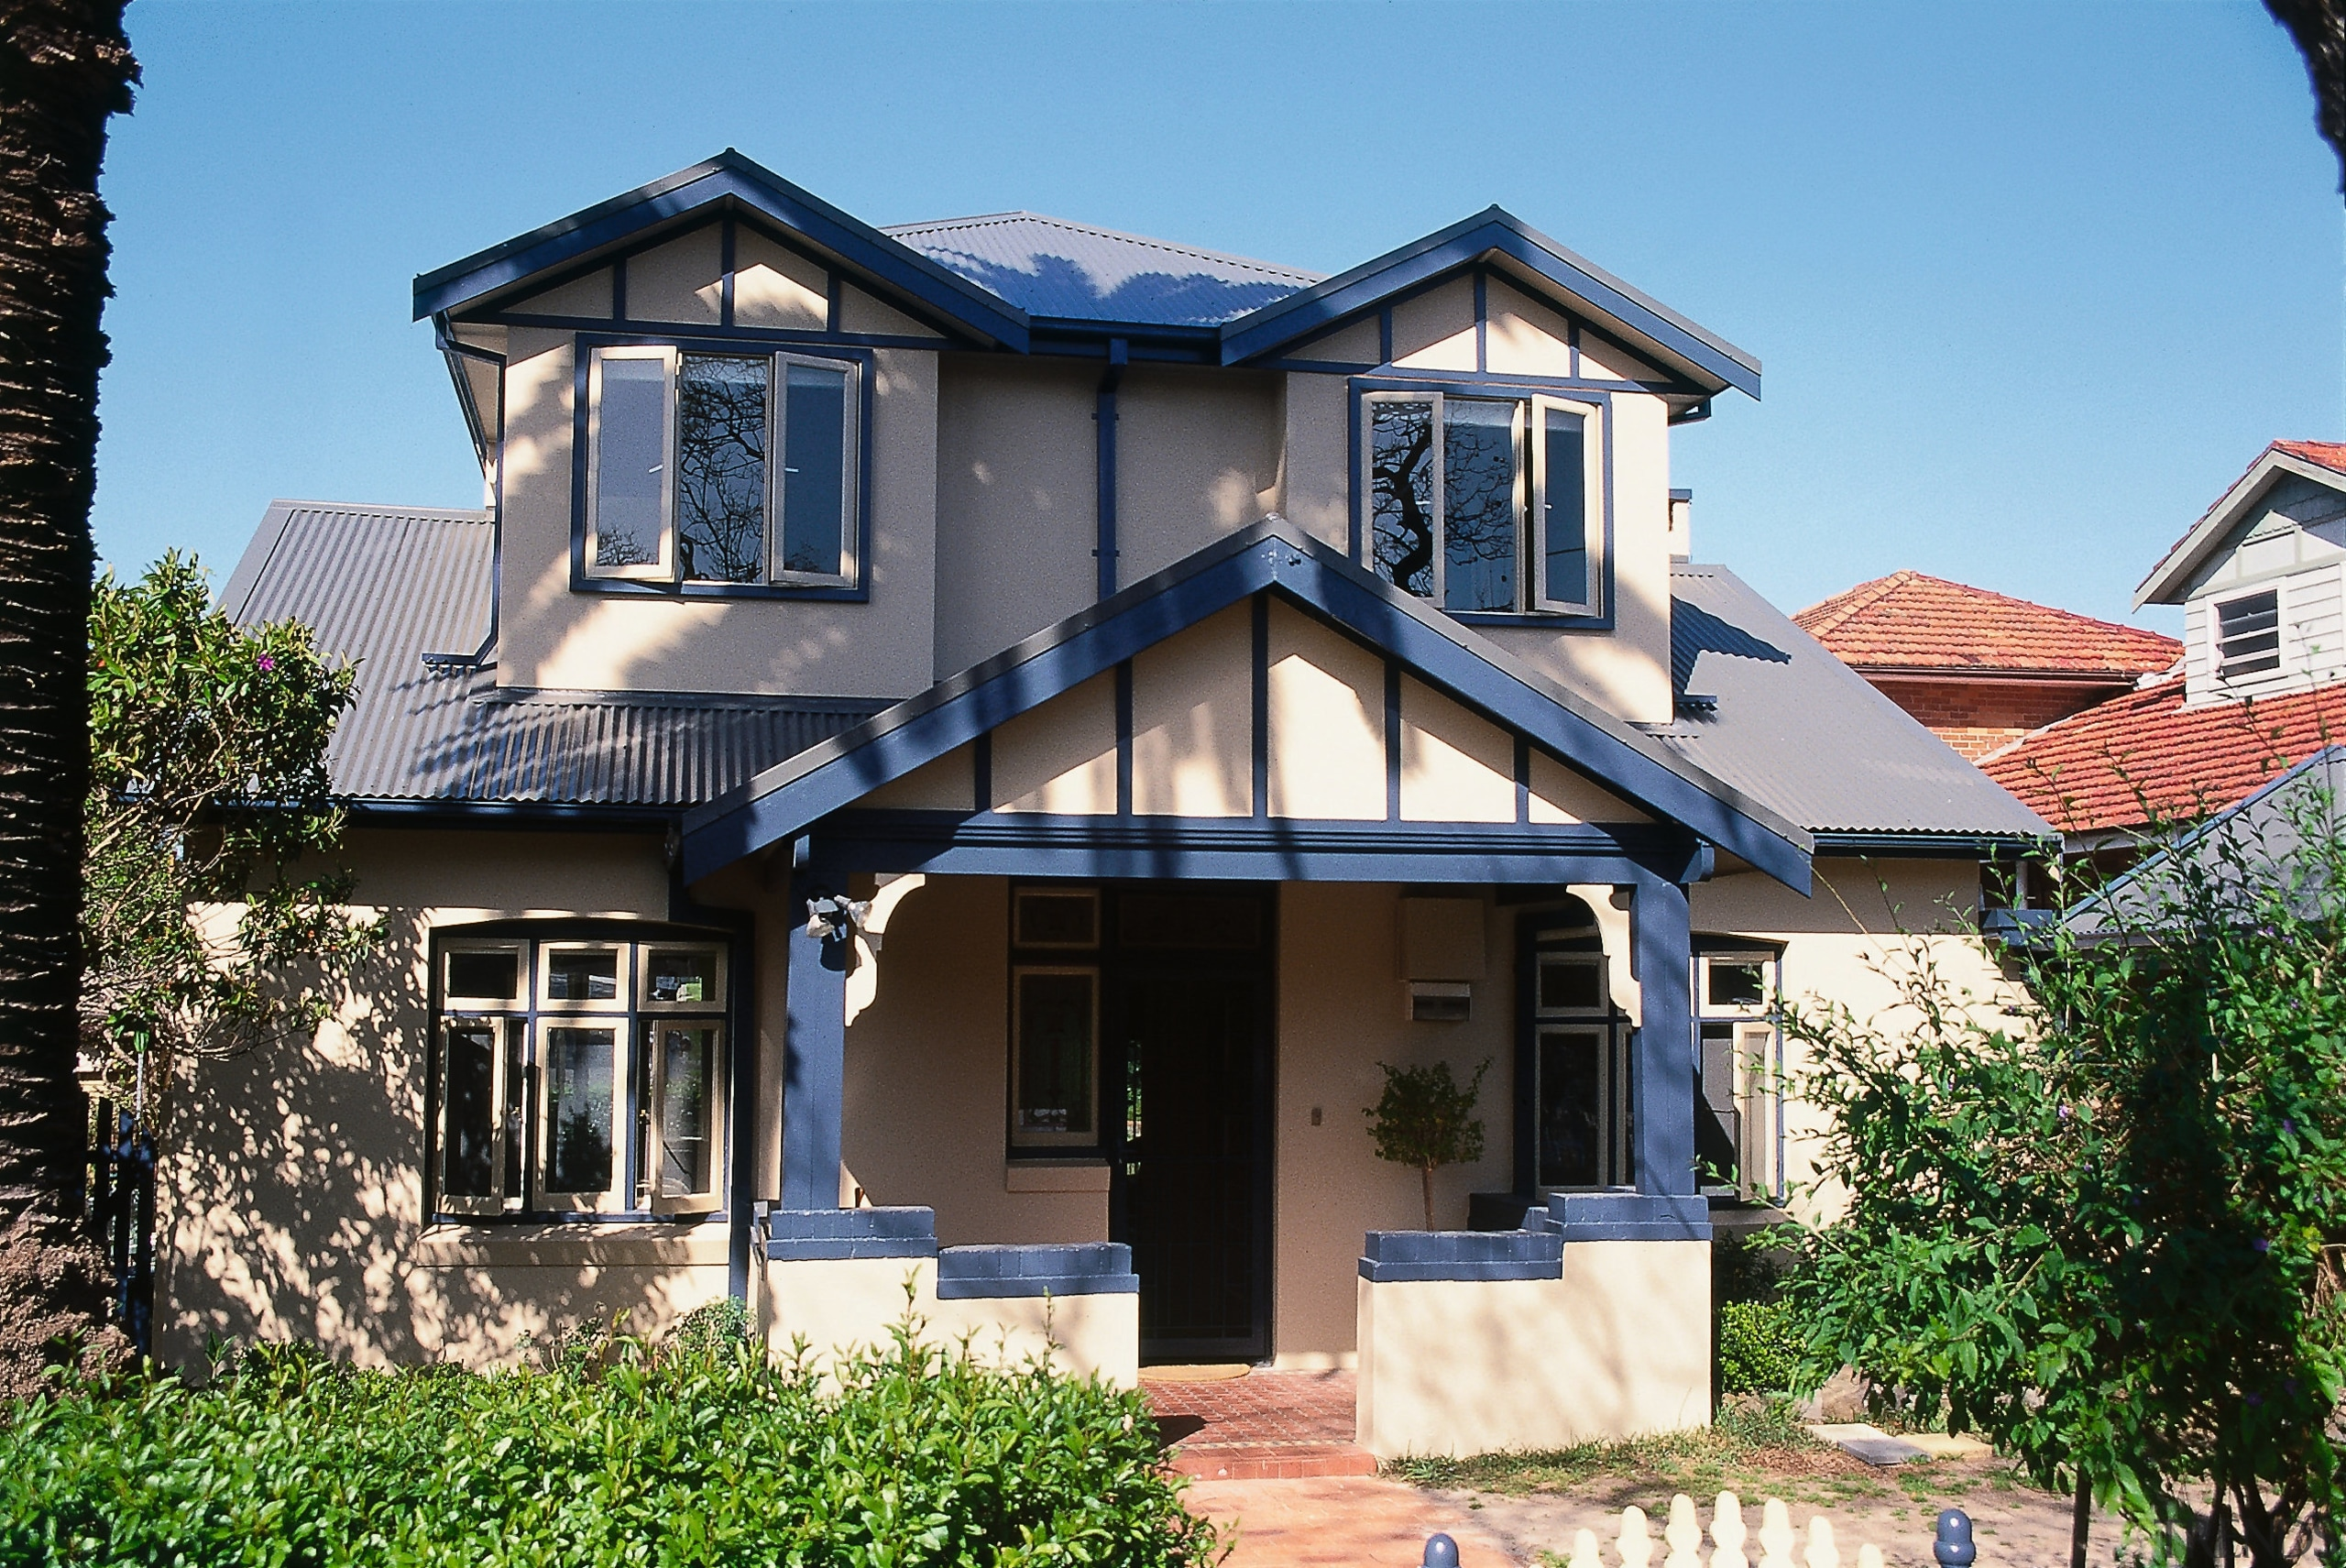 view of exterior of house - view of building, cottage, elevation, estate, facade, home, house, mansion, property, real estate, residential area, roof, siding, villa, window